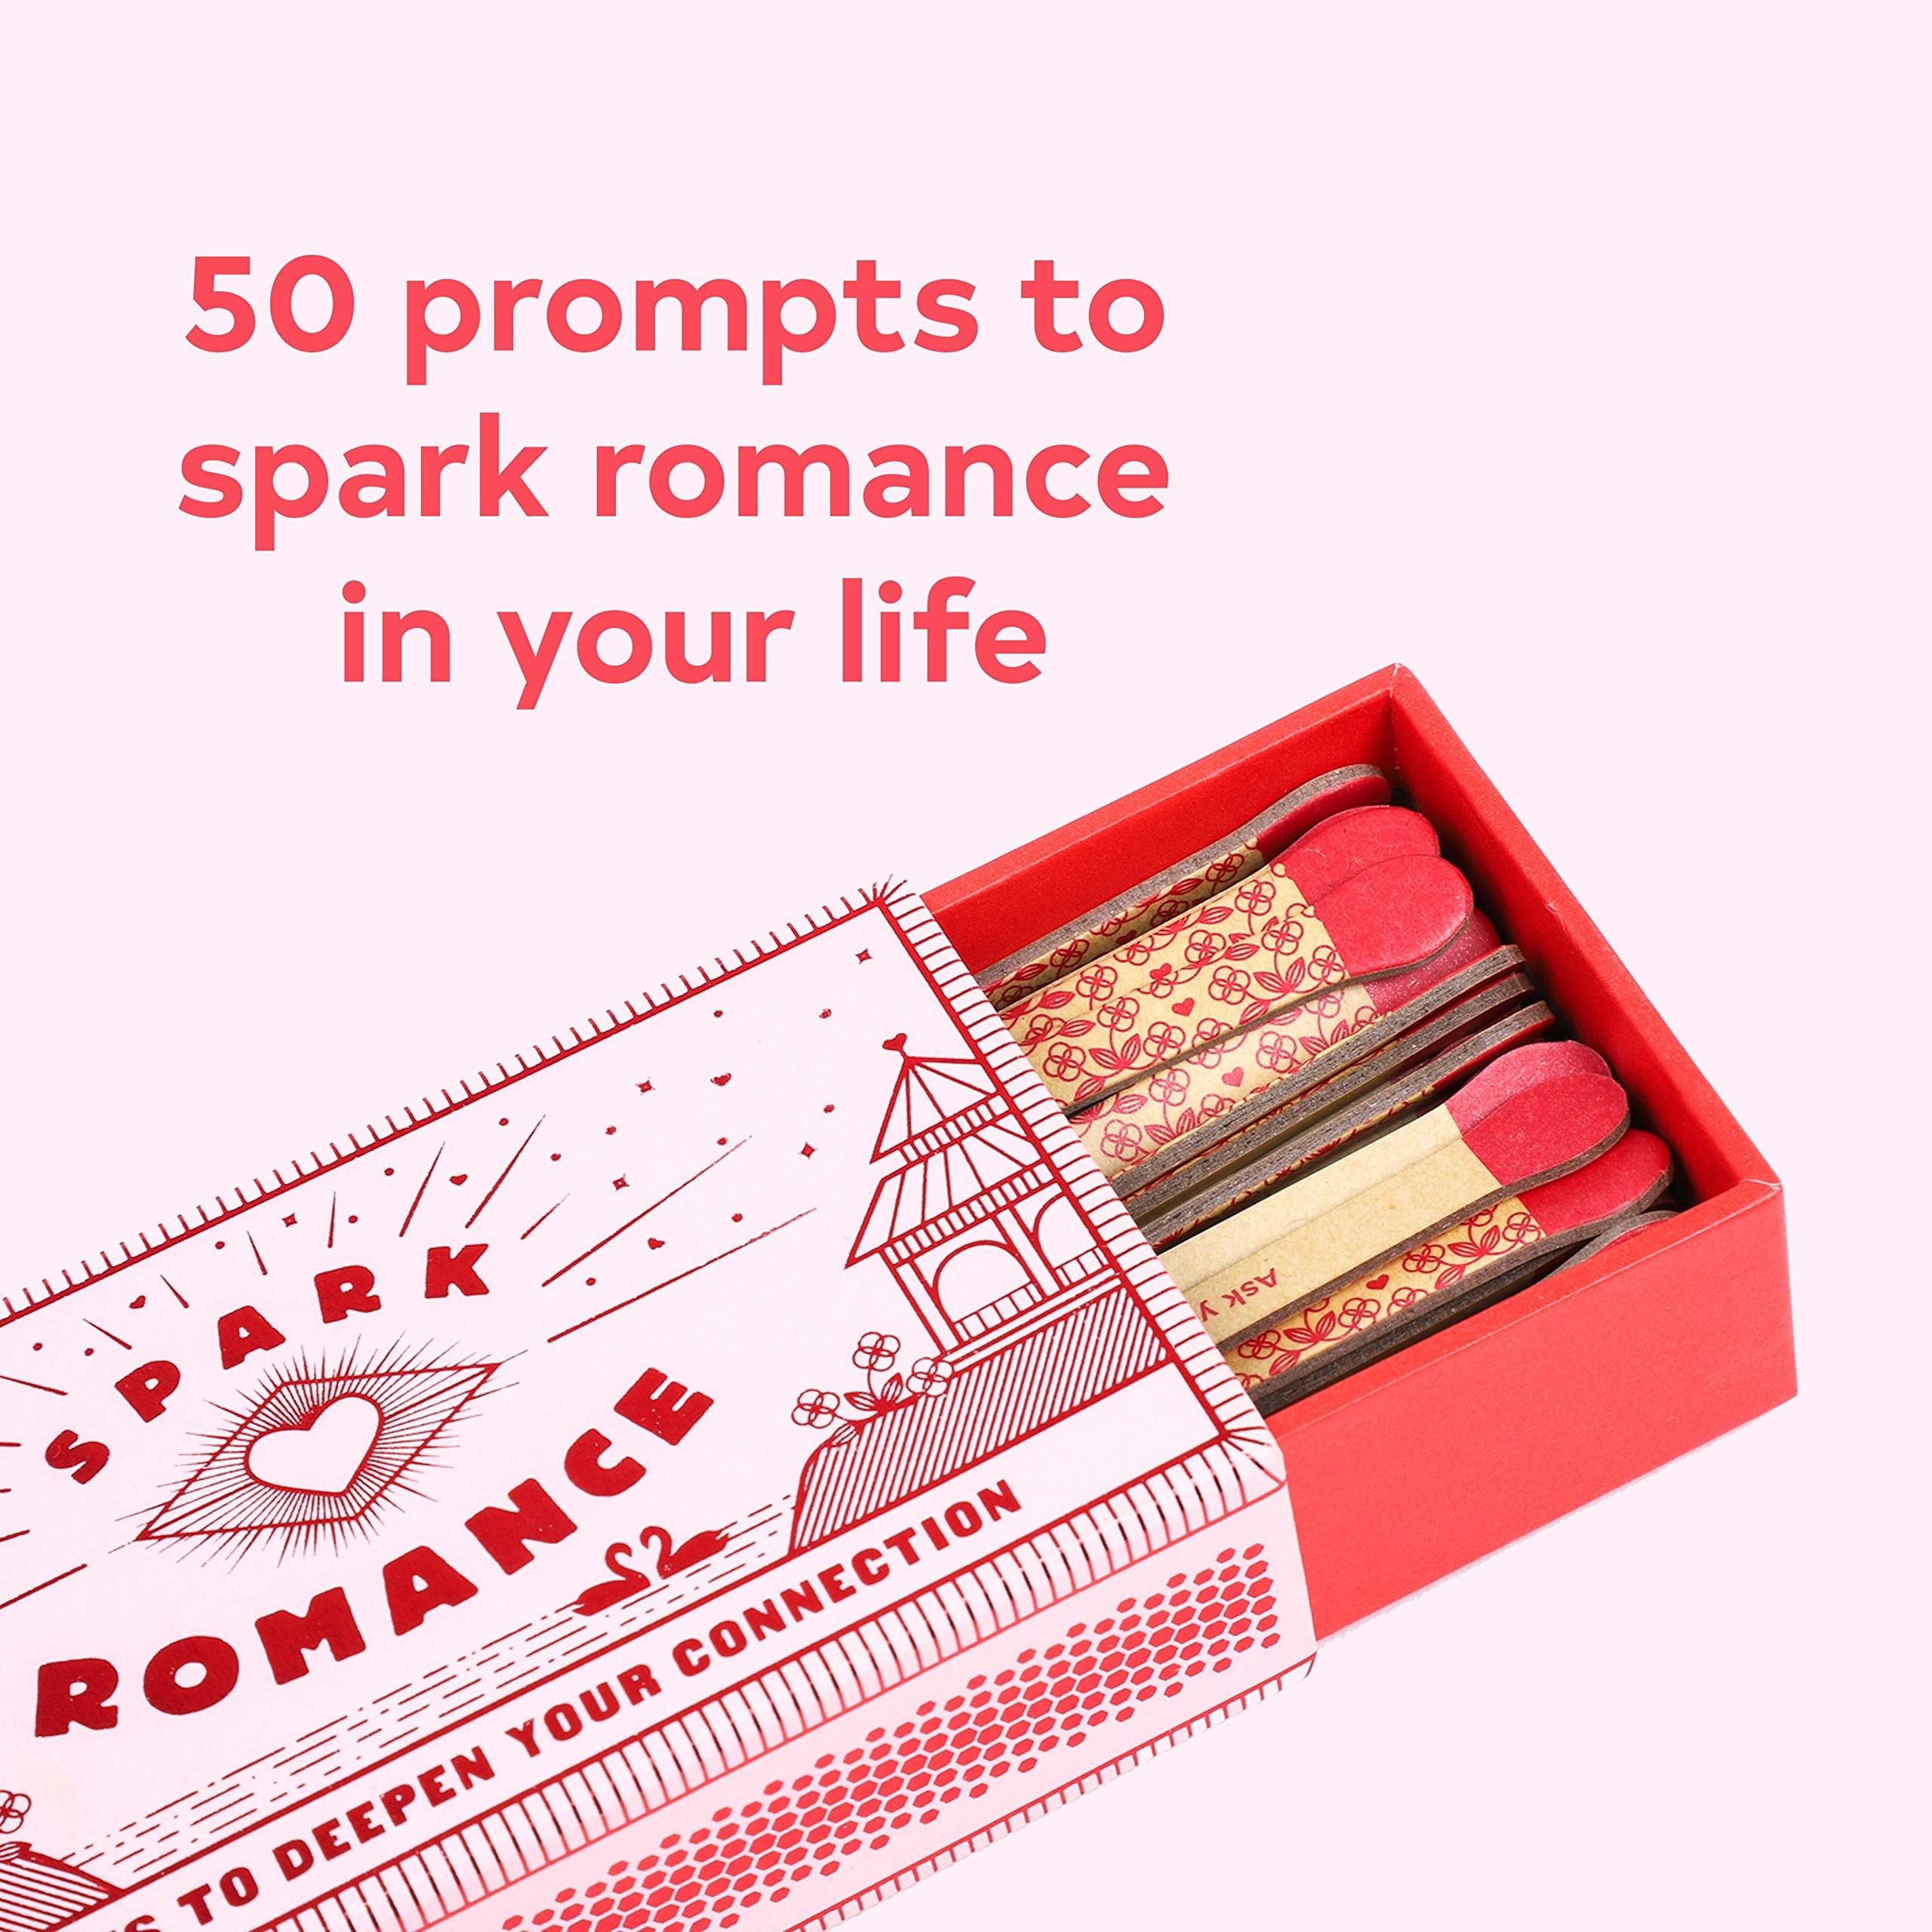 The novelty gift box in pink and red